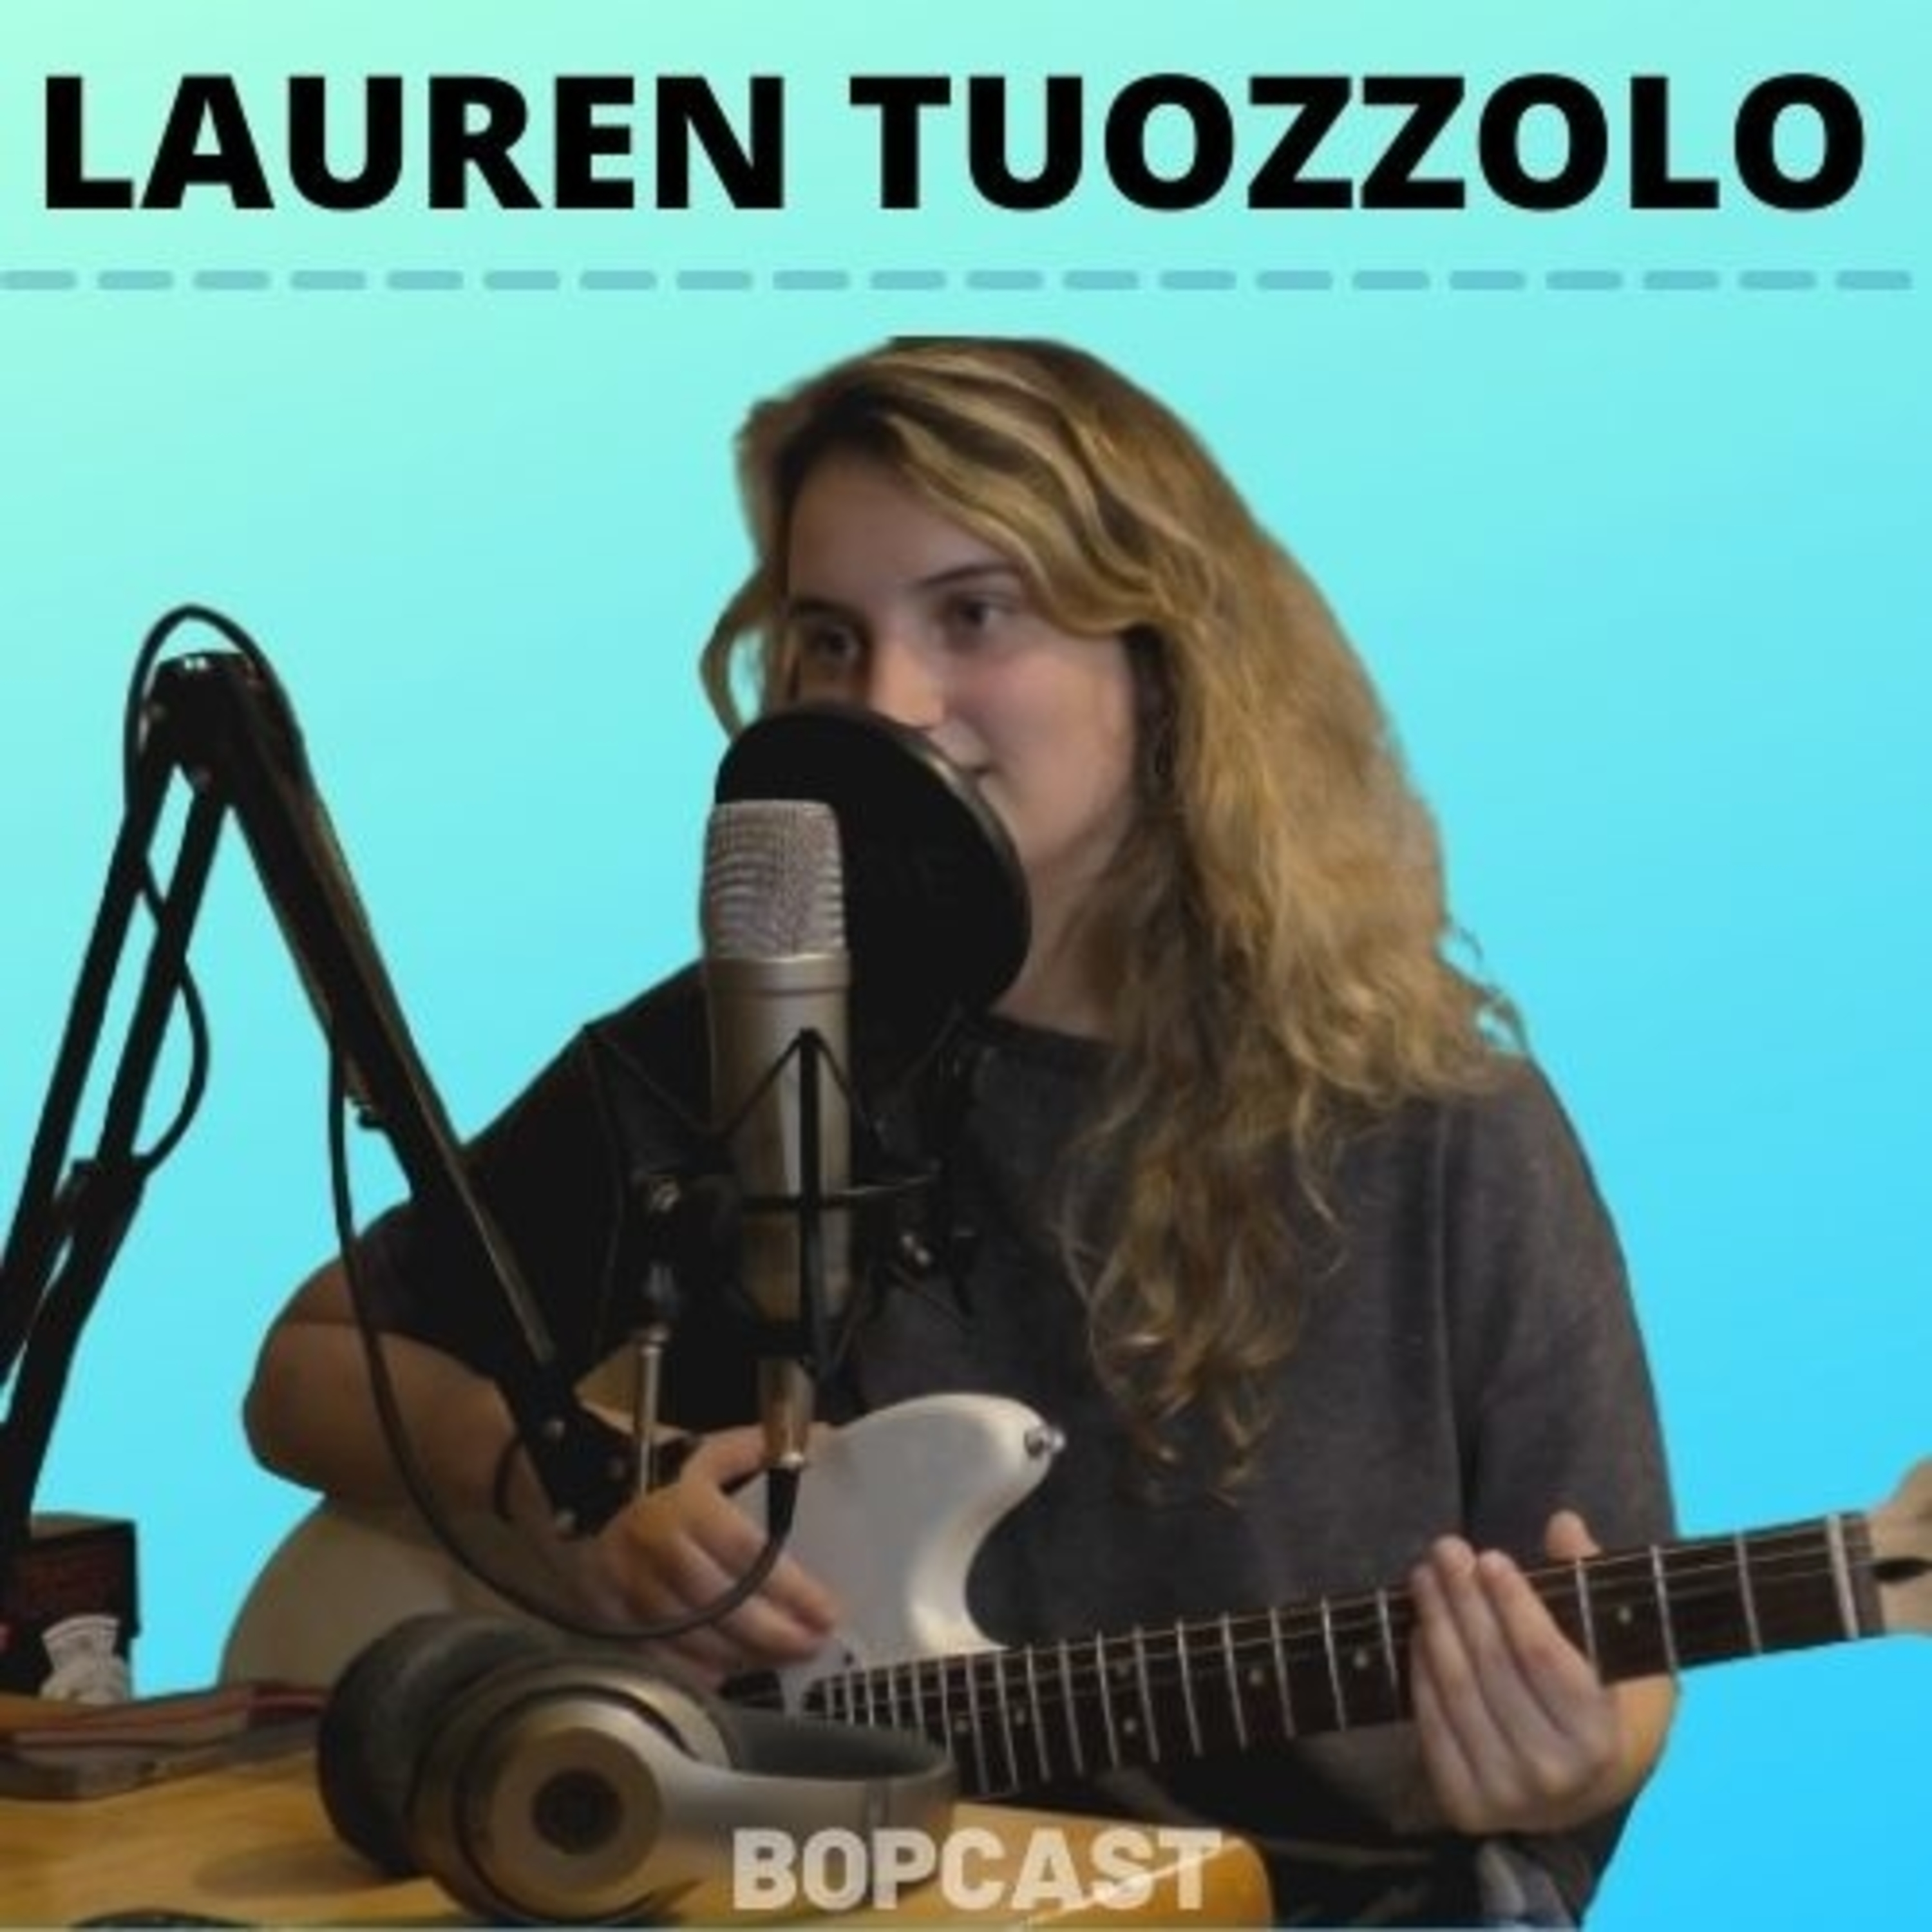 She Does it All - Combining Film and Analytics, Combatting and Overcoming OCD, Streaming on Twitch, and a Special Performance with Tuzz (Lauren Tuozzolo)